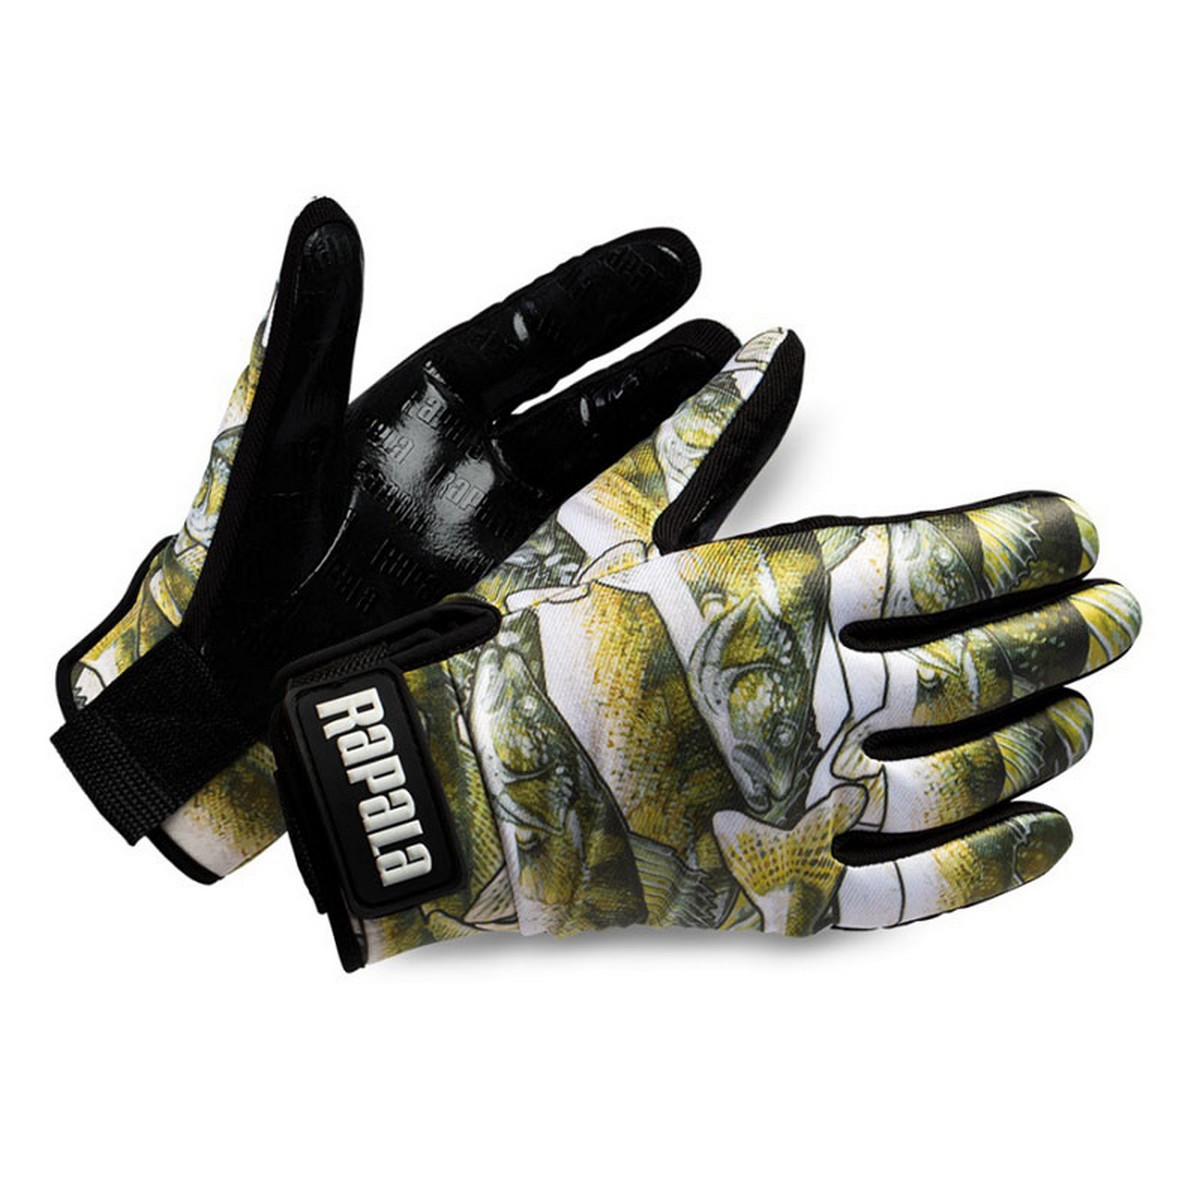 Ръкавици Rapala Stretch Grip Glove Fish Print Rubberized Palm